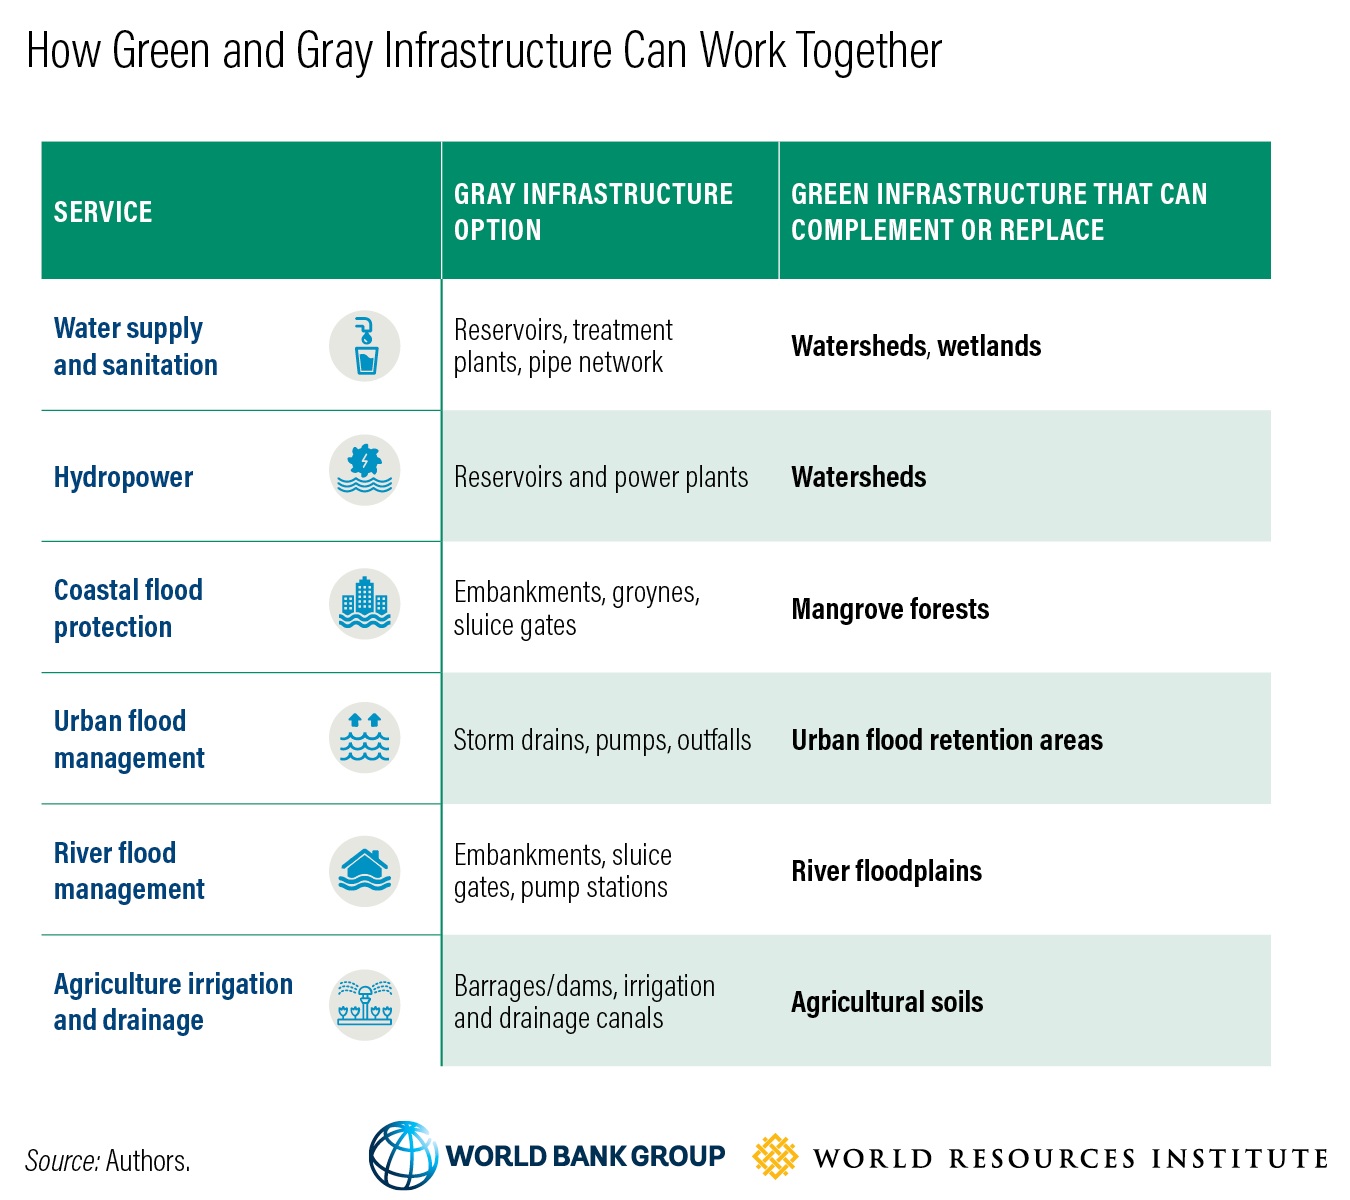 Debunking Myths 5 Things To Know About Green Infrastructure